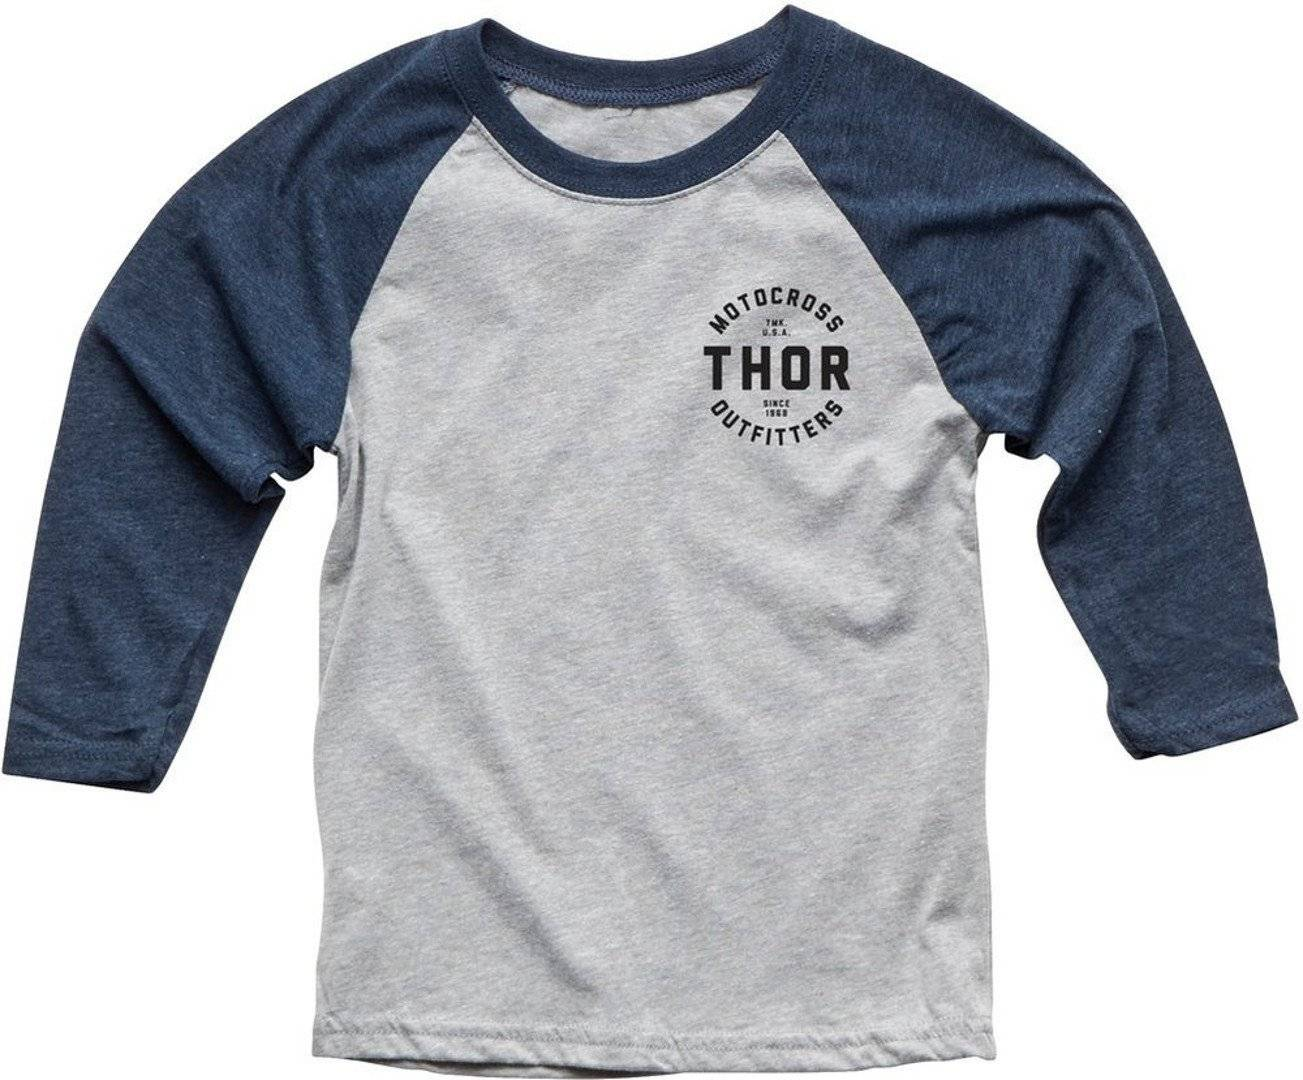 Thor Outfitters 3/4 Sleeve Youth t-shirt Grigio Blu XL